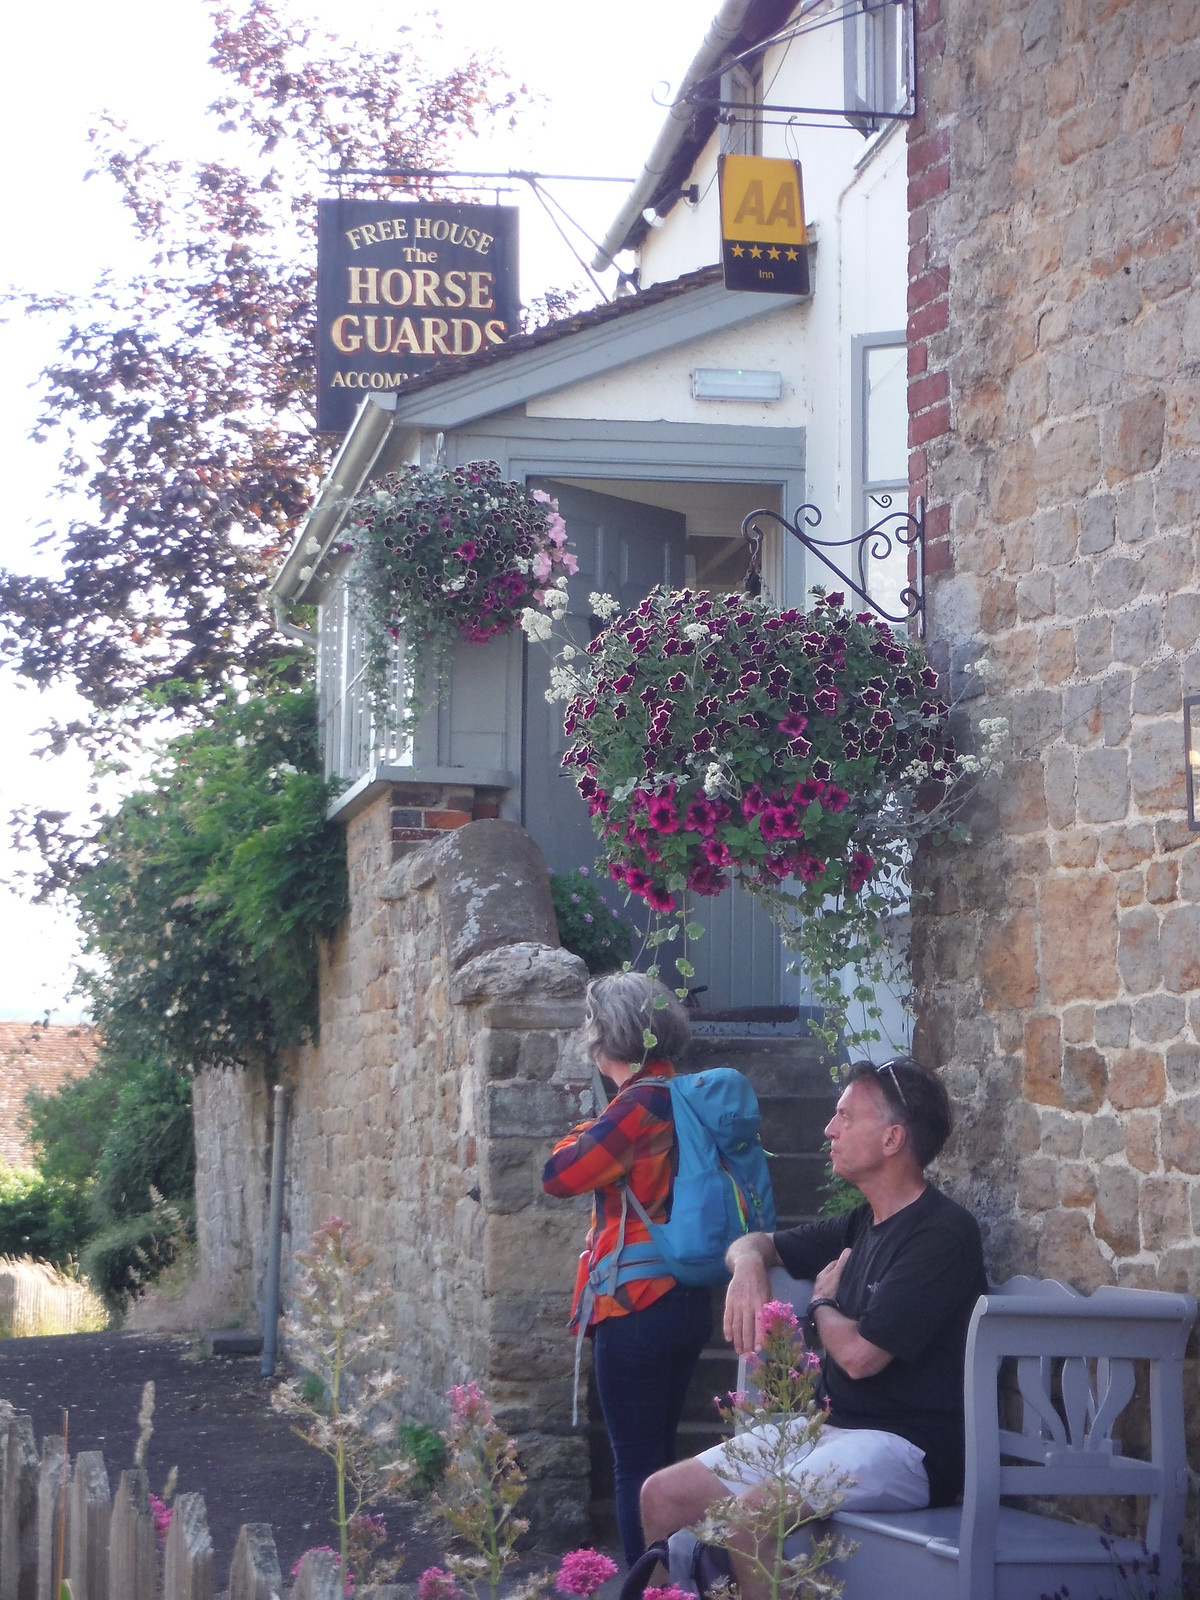 The Horse Guards Inn, Tillington SWC Walk 217 Midhurst Way: Arundel to Midhurst